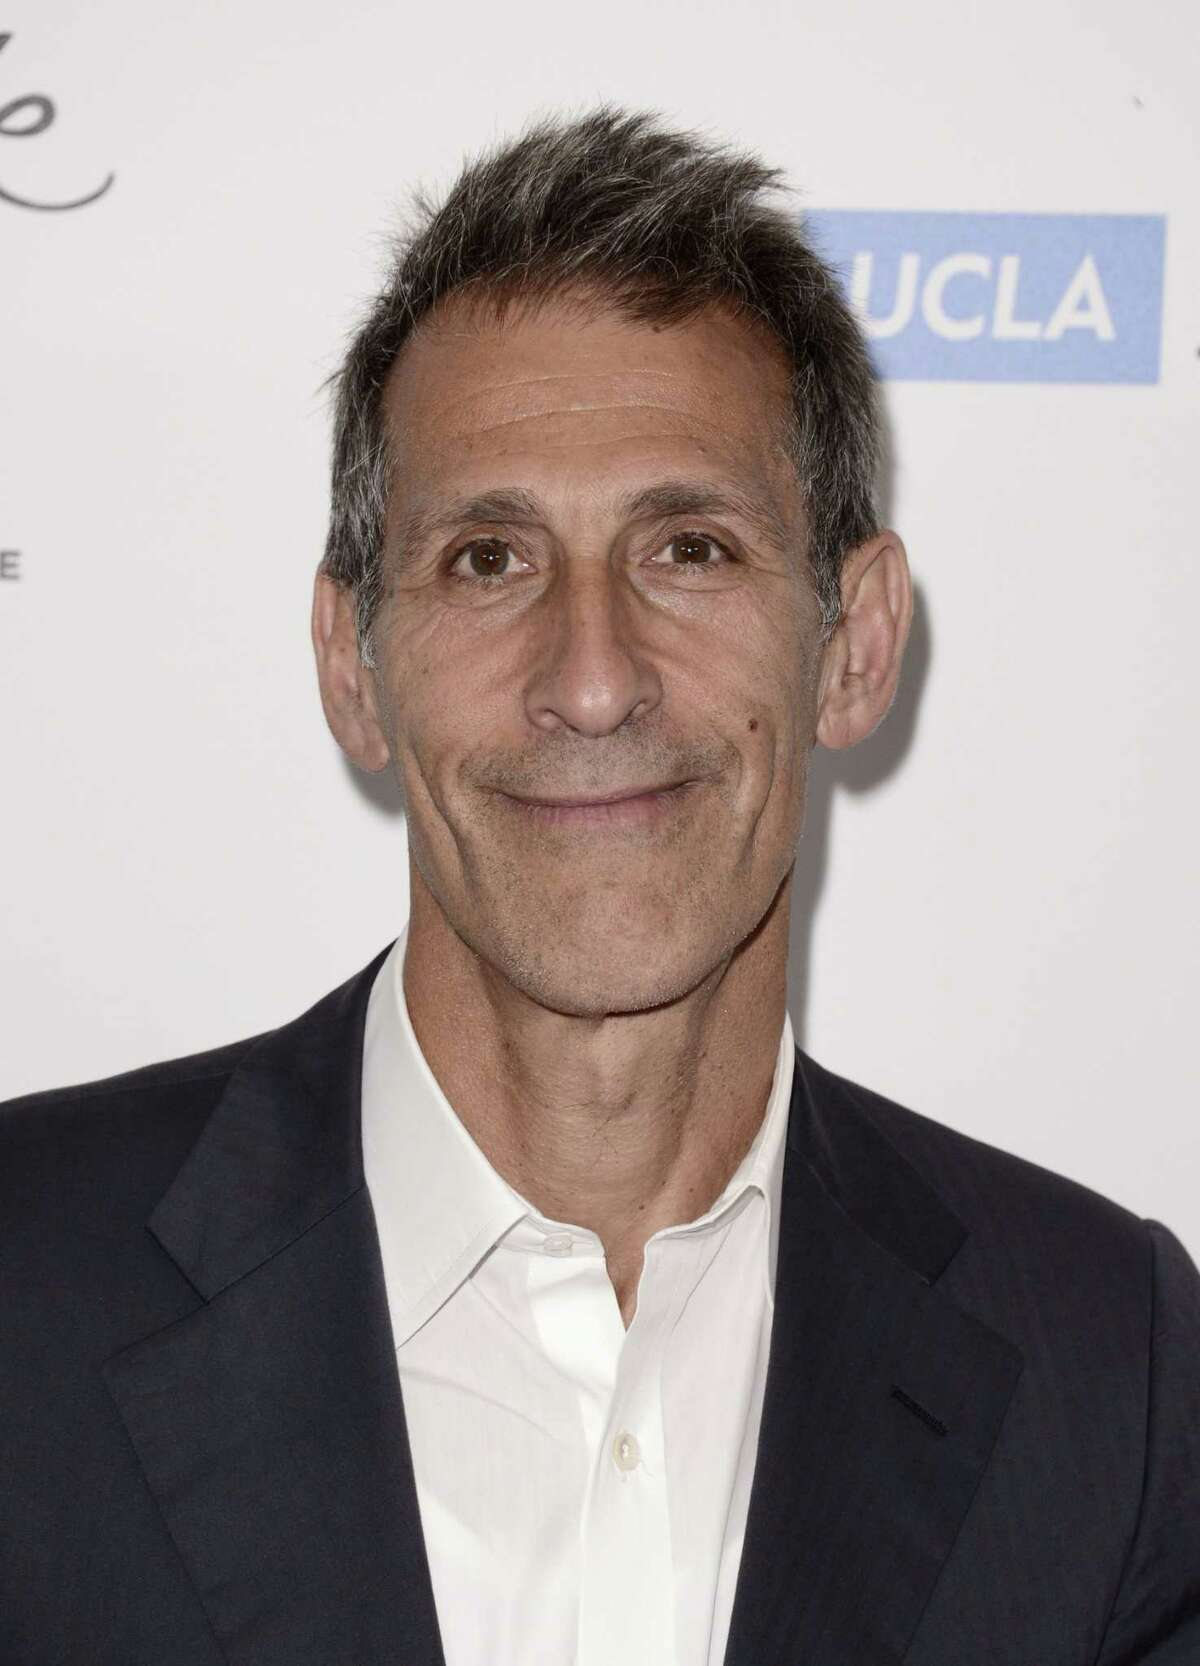 """FILE - In this April 25, 2014 file photo, Michael Lynton, chairman and CEO, Sony Pictures Entertainment, arrives at the 19th annual """"Taste For A Cure"""" at the Beverly Wilshire Hotel, in Beverly Hills, Calif. More than six weeks after hackers attacked Sony Pictures Entertainment, its computer network is still down but the studio has not lost a single day of production on any of its films or television, Lynton told The Associated Press on Thursday, Jan. 8, 2015. In a wide-ranging interview Lynton talked about the companyís isolation and the uncertainty that was created by the pre-Thanksgiving attack, which the U.S. government has attributed to North Korea. (Photo by Dan Steinberg/Invision/AP, File)"""